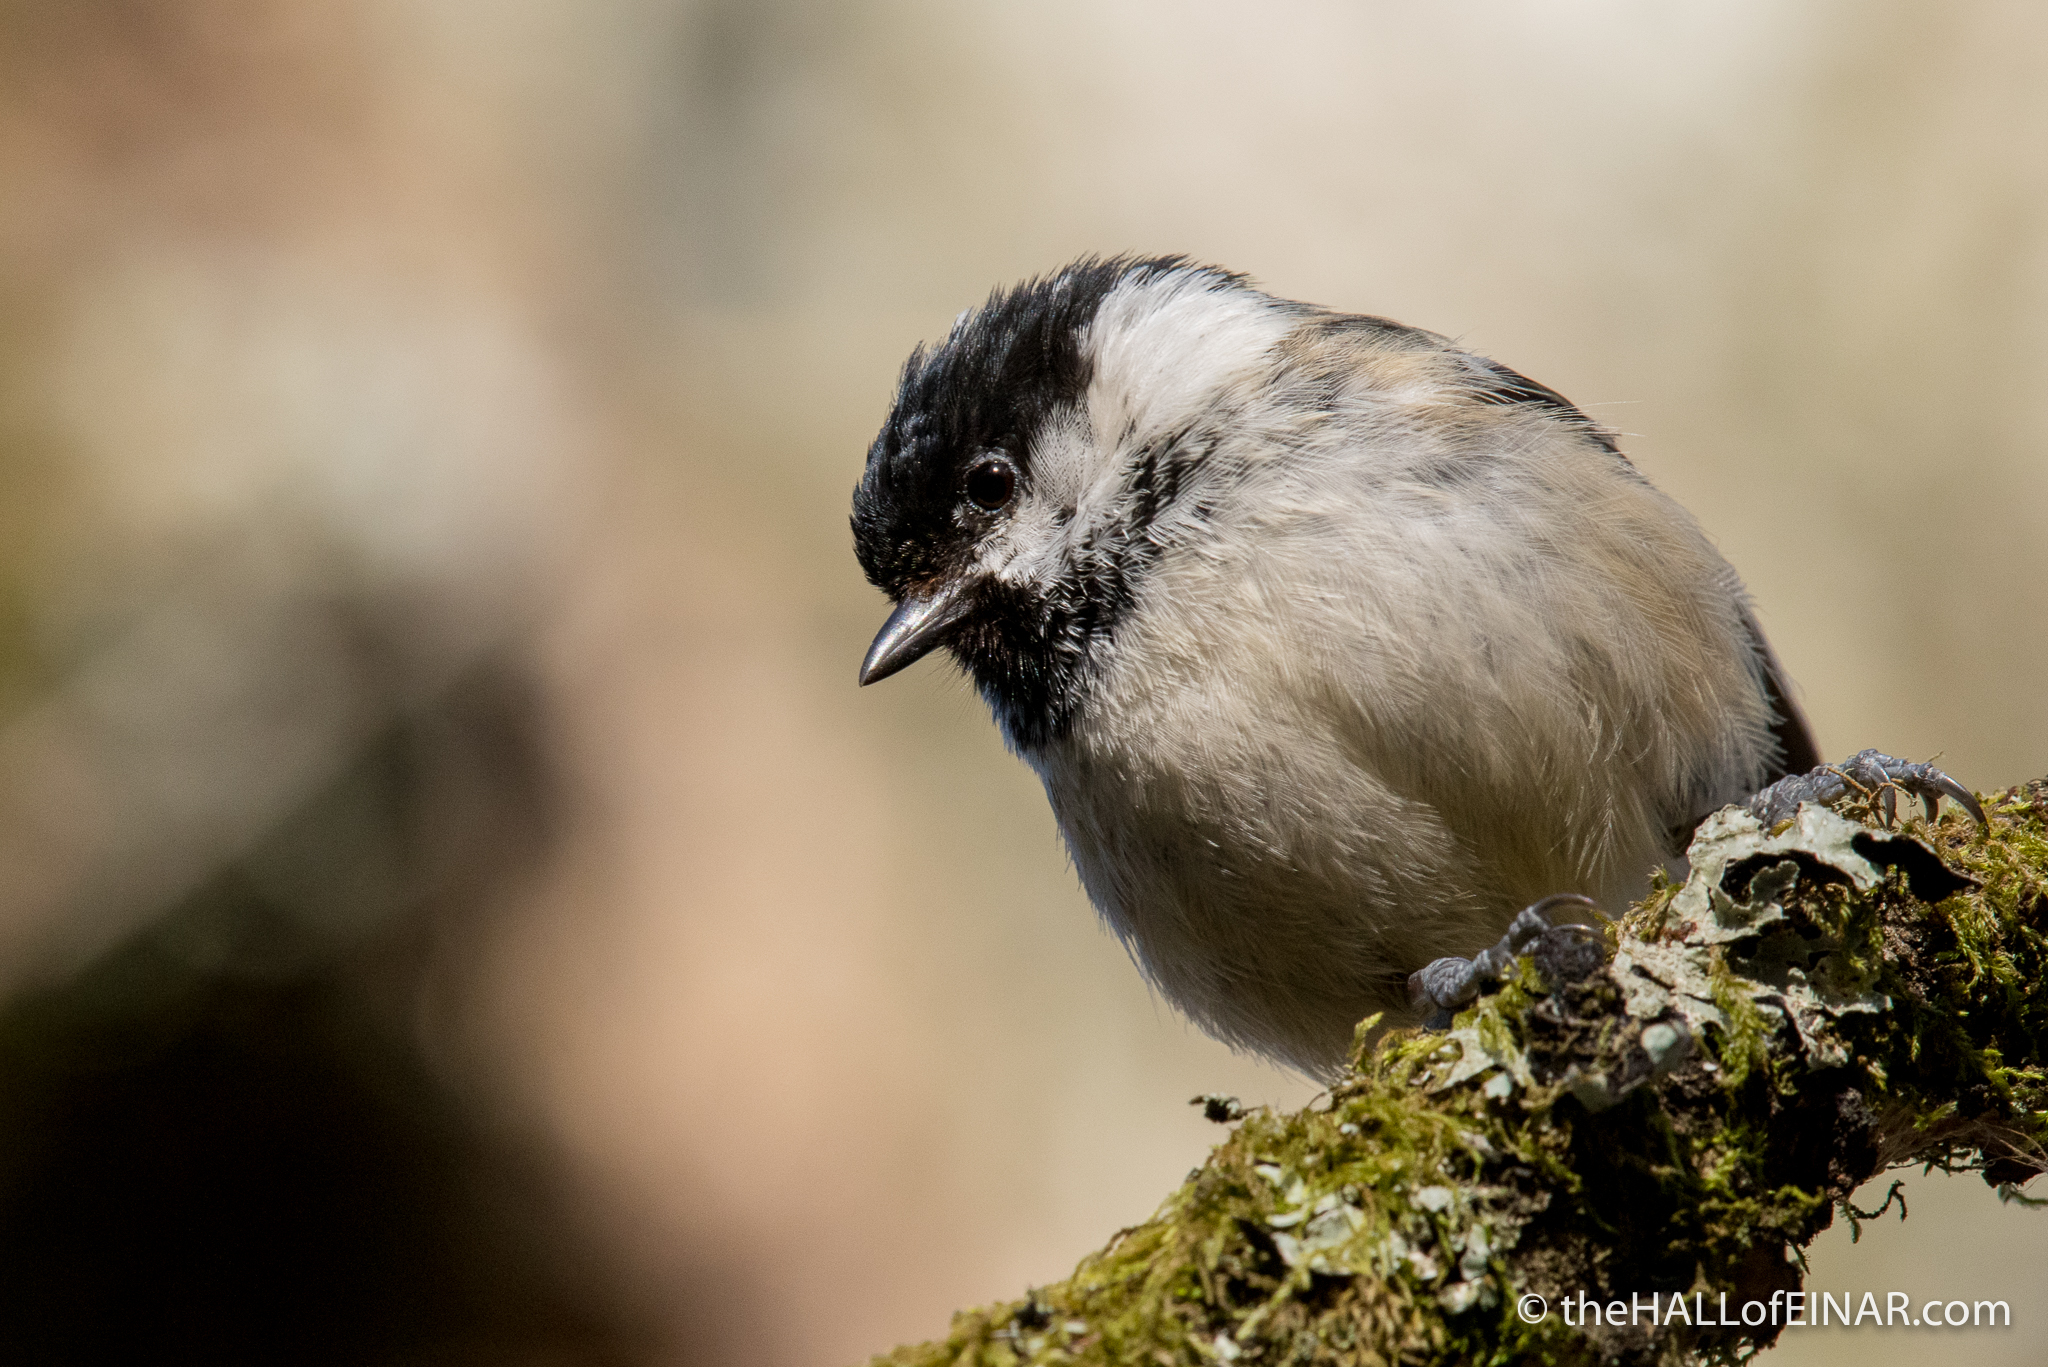 Coal Tit - The Hall of Einar - photograph (c) David Bailey (not the)